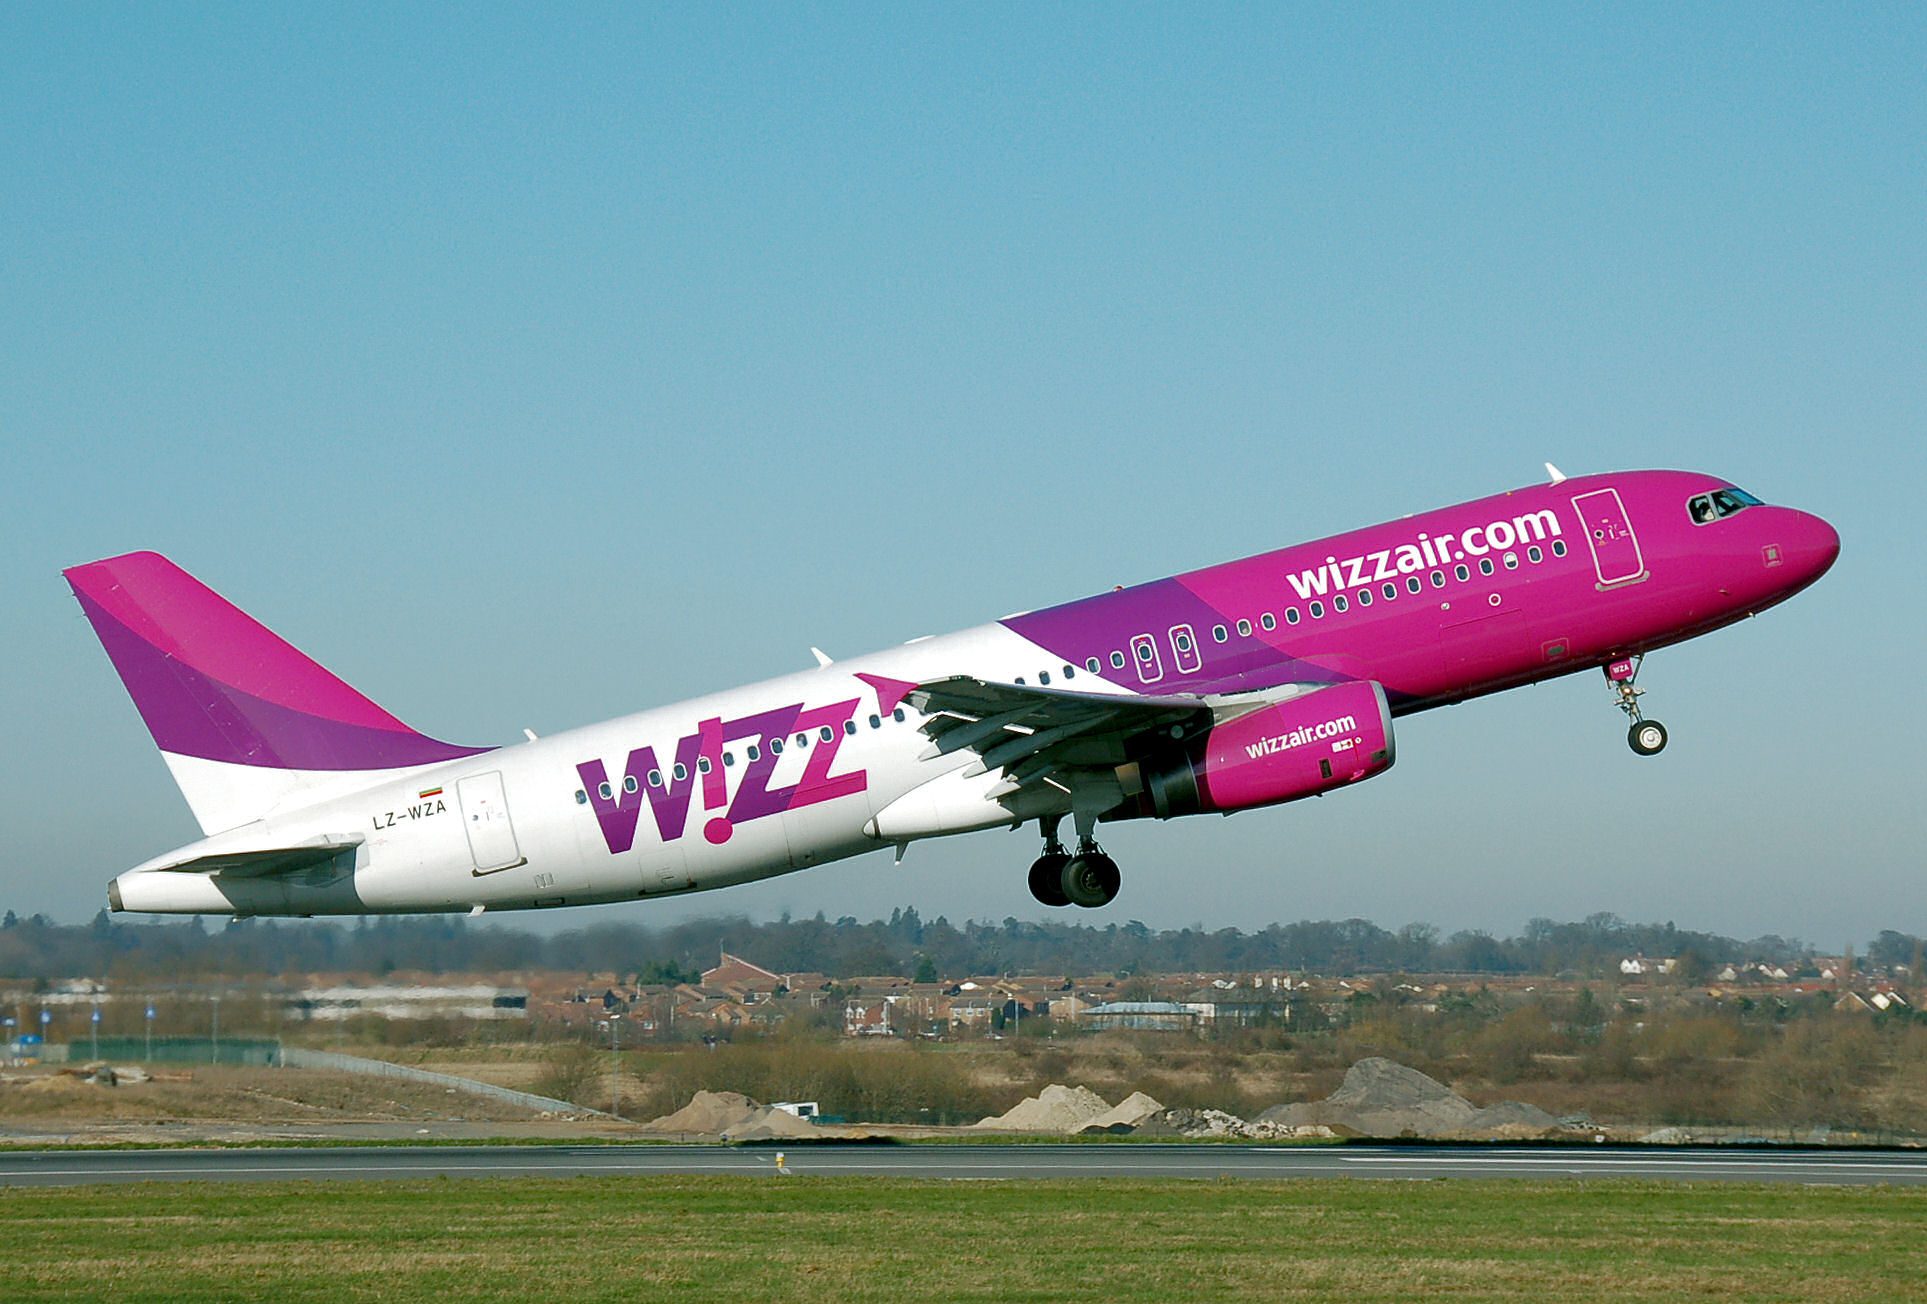 File:Whizzair.a320-200.lz-wza.leavesground.arp.jpg - Wikipedia ...